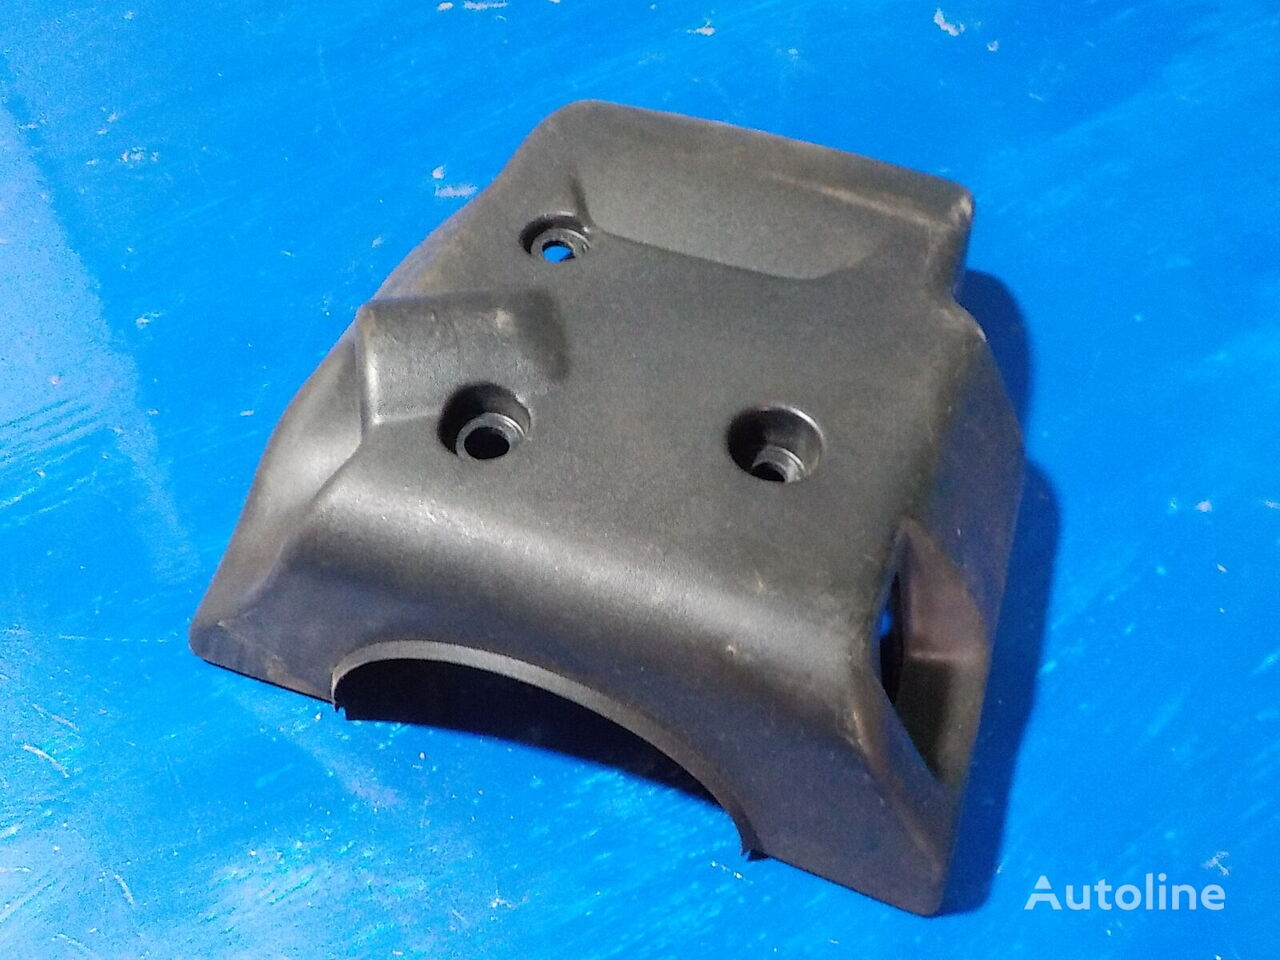 Kozhuh rulvoy kolonki Scania spare parts for truck